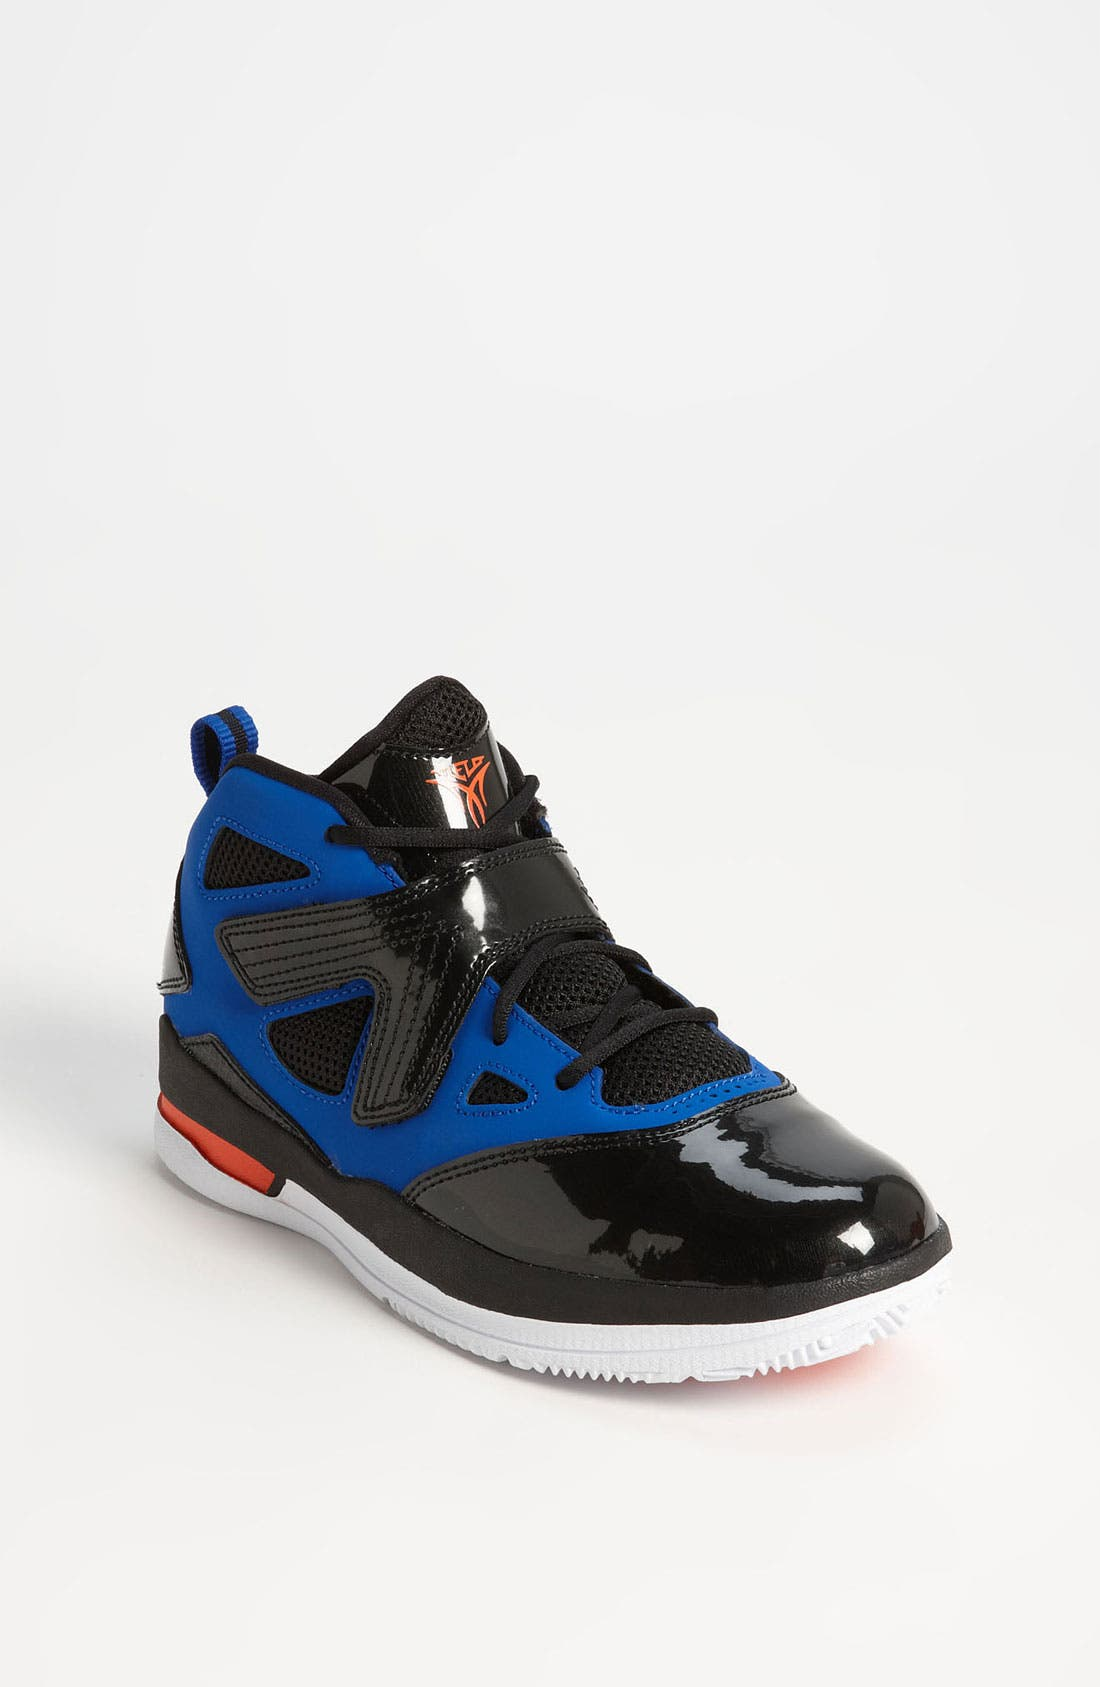 Main Image - Nike 'Jordan Melo M9' Basketball Shoe (Toddler & Little Kid)